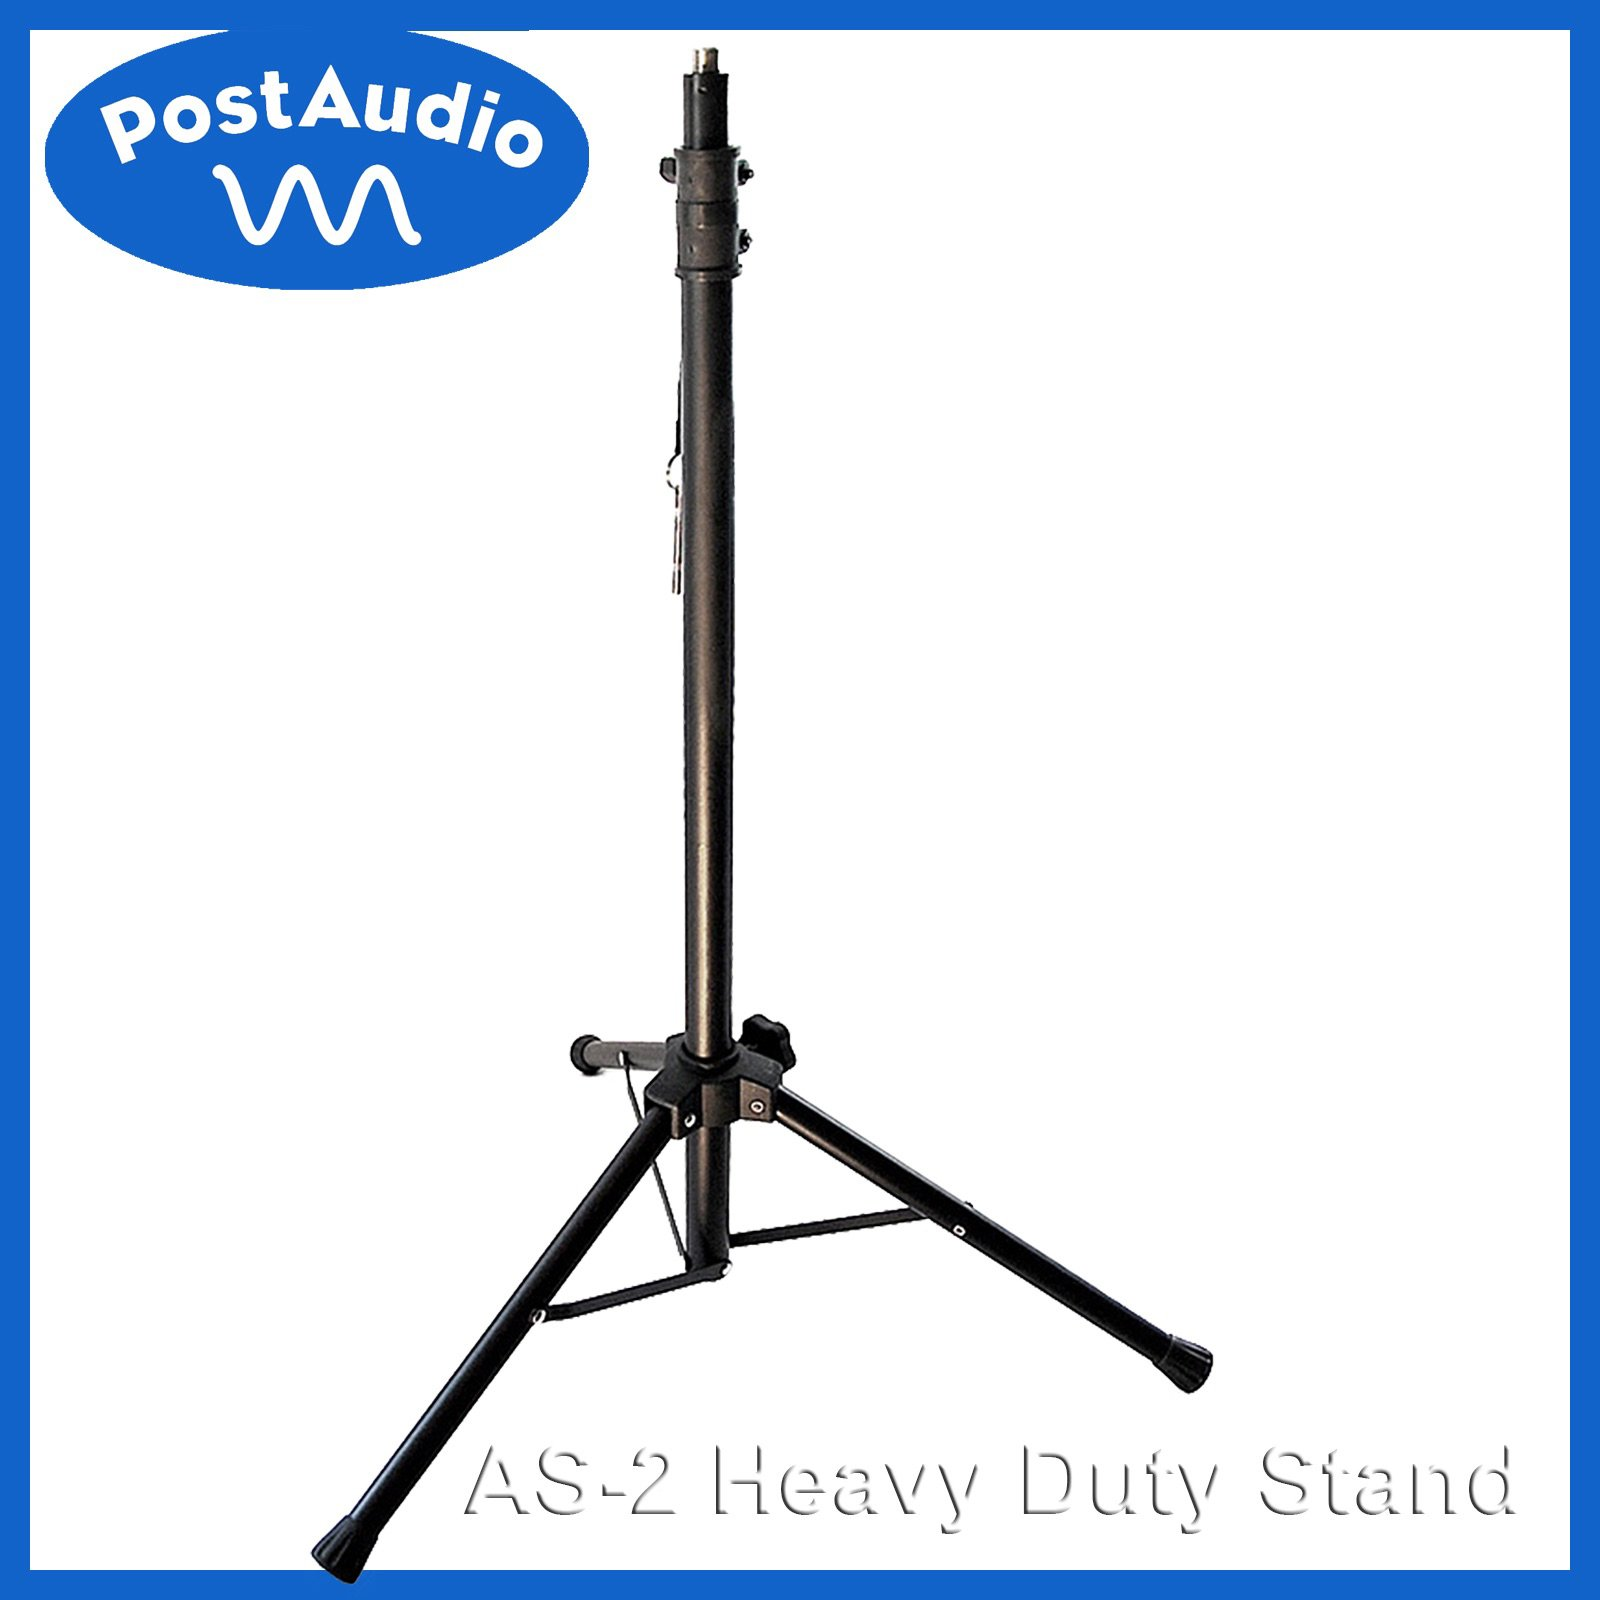 Post Audio Heavy Duty Mic Stand Great for Reflection Filters, Speakers, Lighting by Post Audio